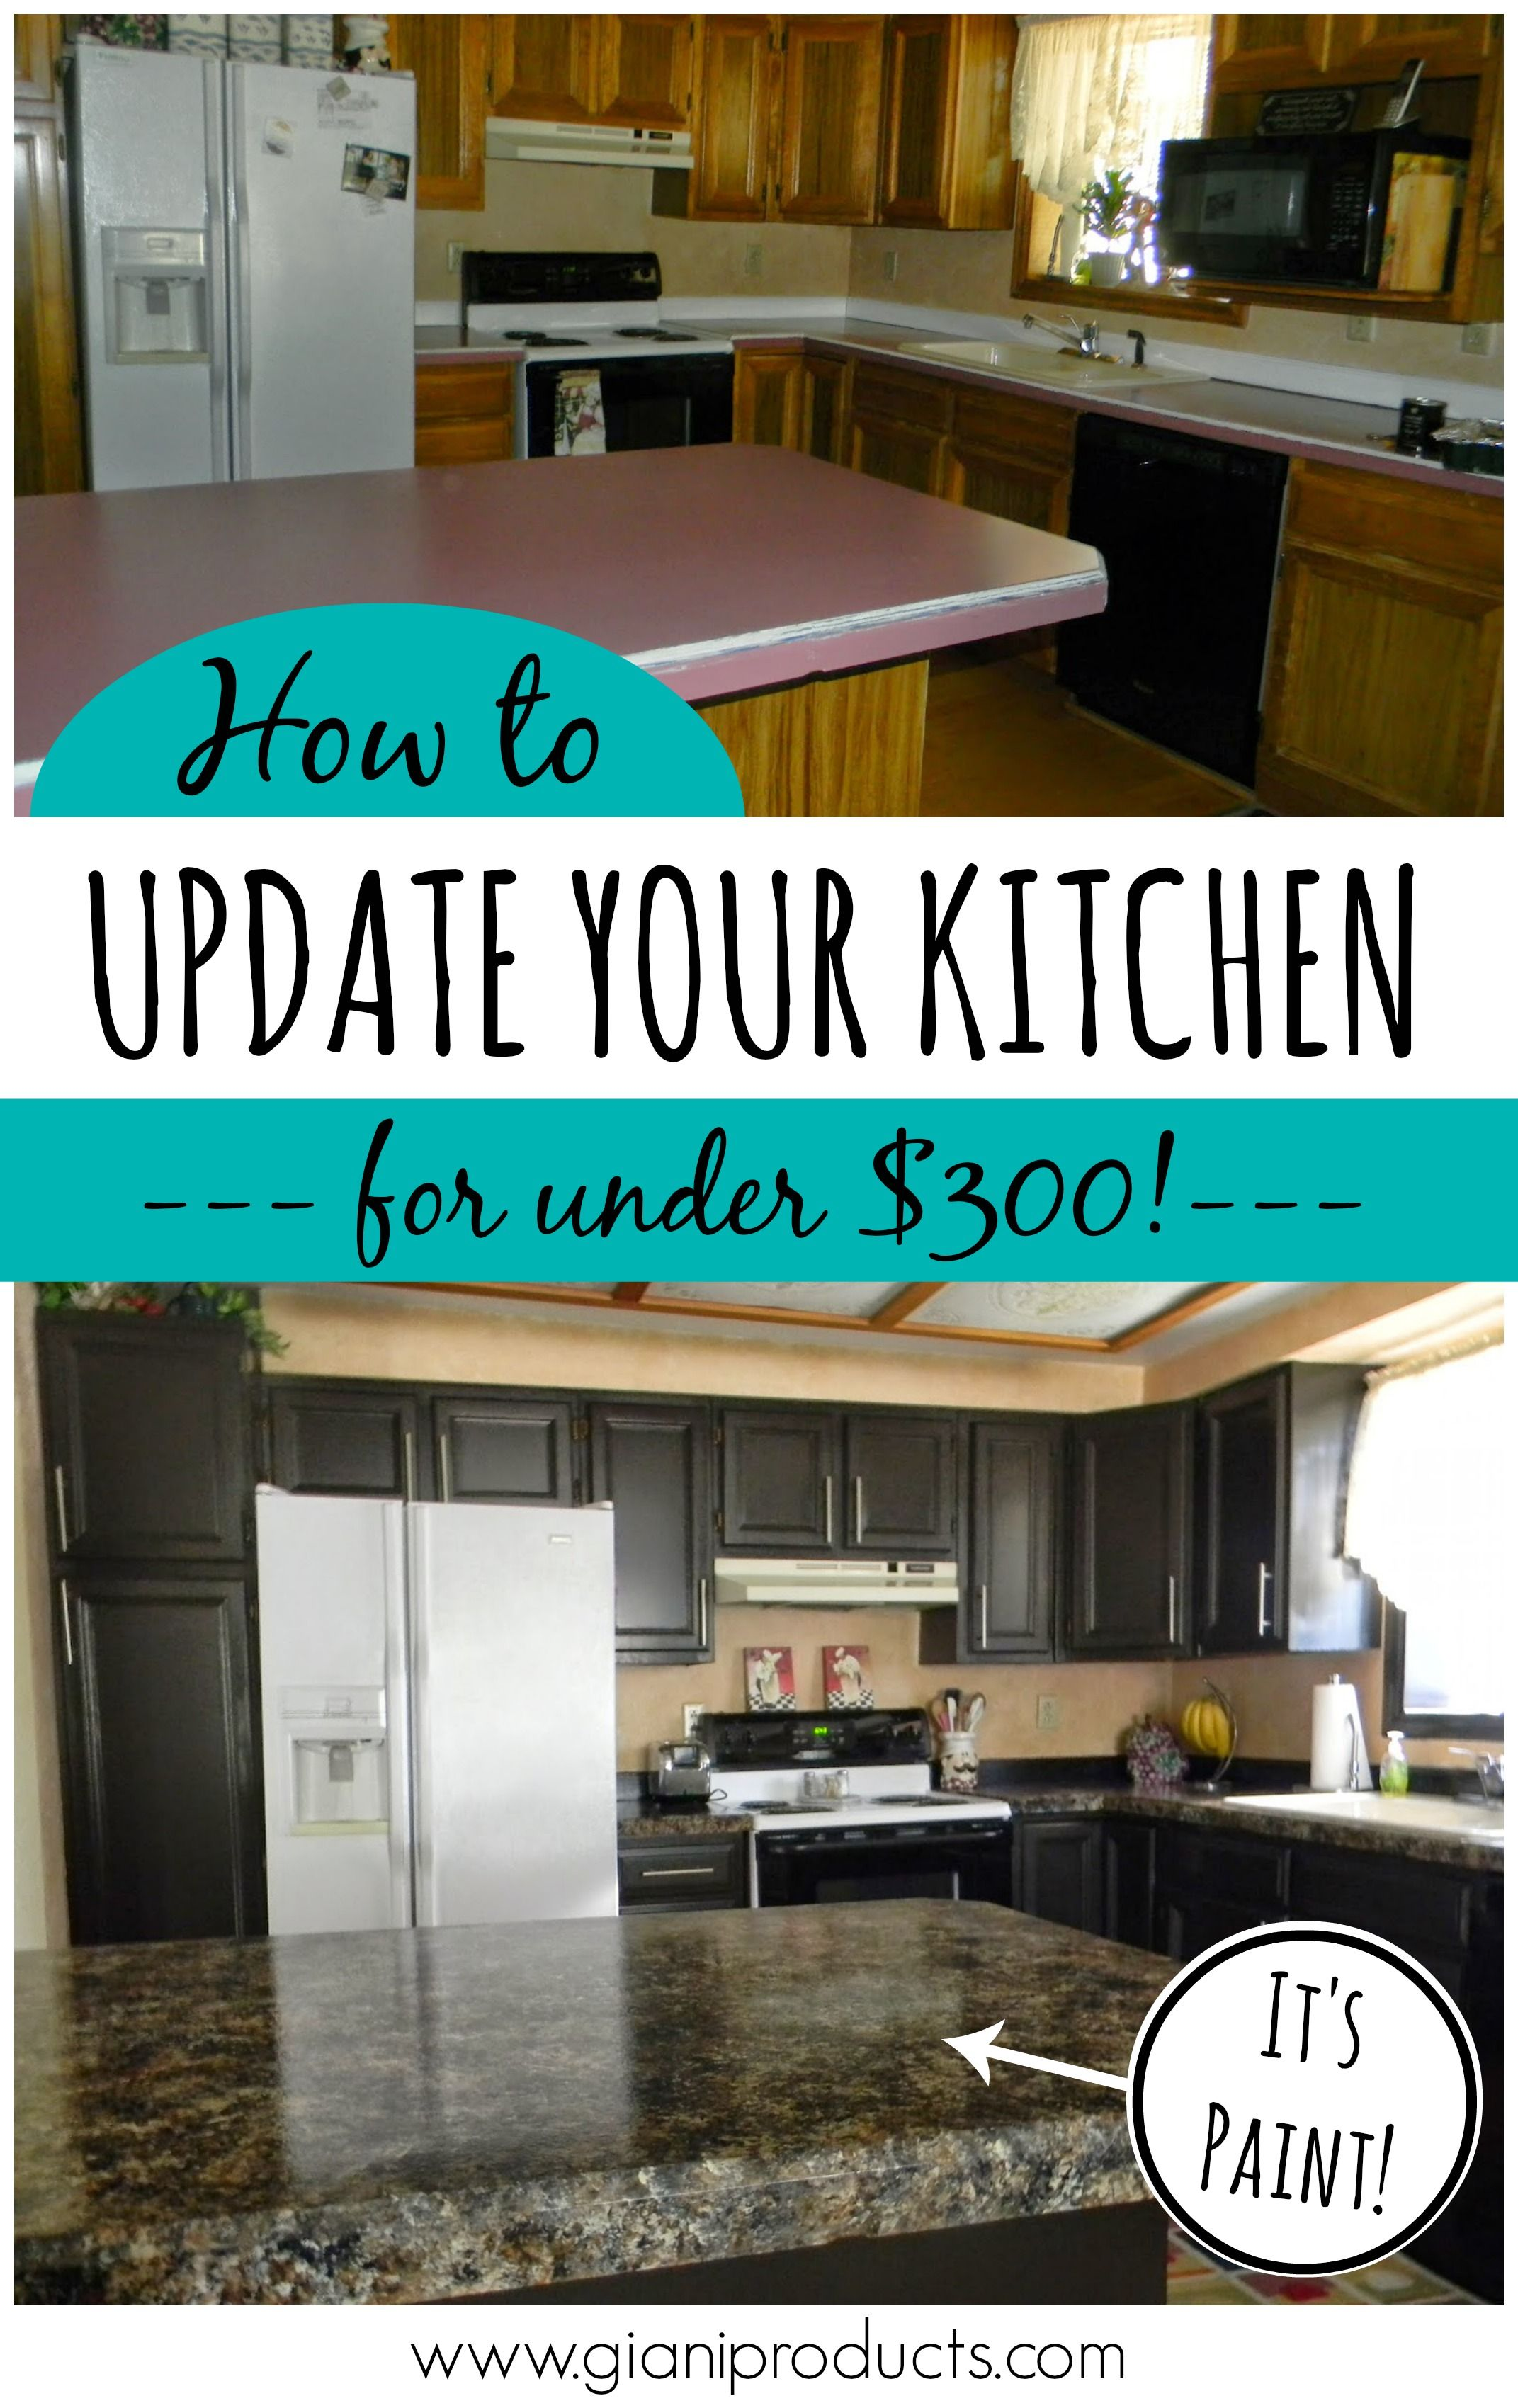 Kitchen Update On A Budget Countertop Paint That Looks Like